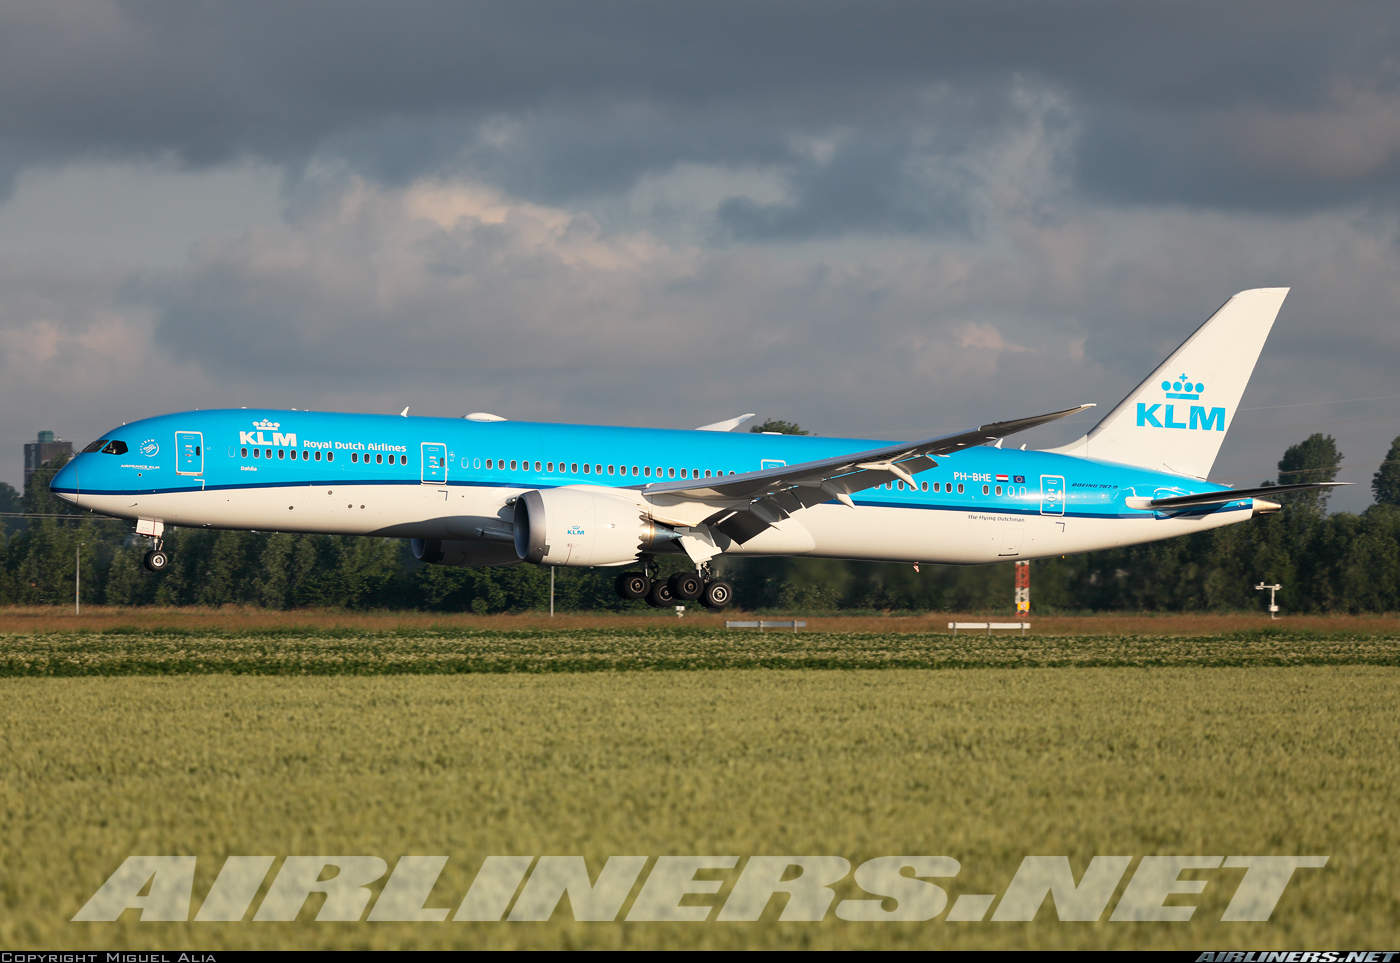 KLM – Royal Dutch Airlines becomes first airline to serve draught beer